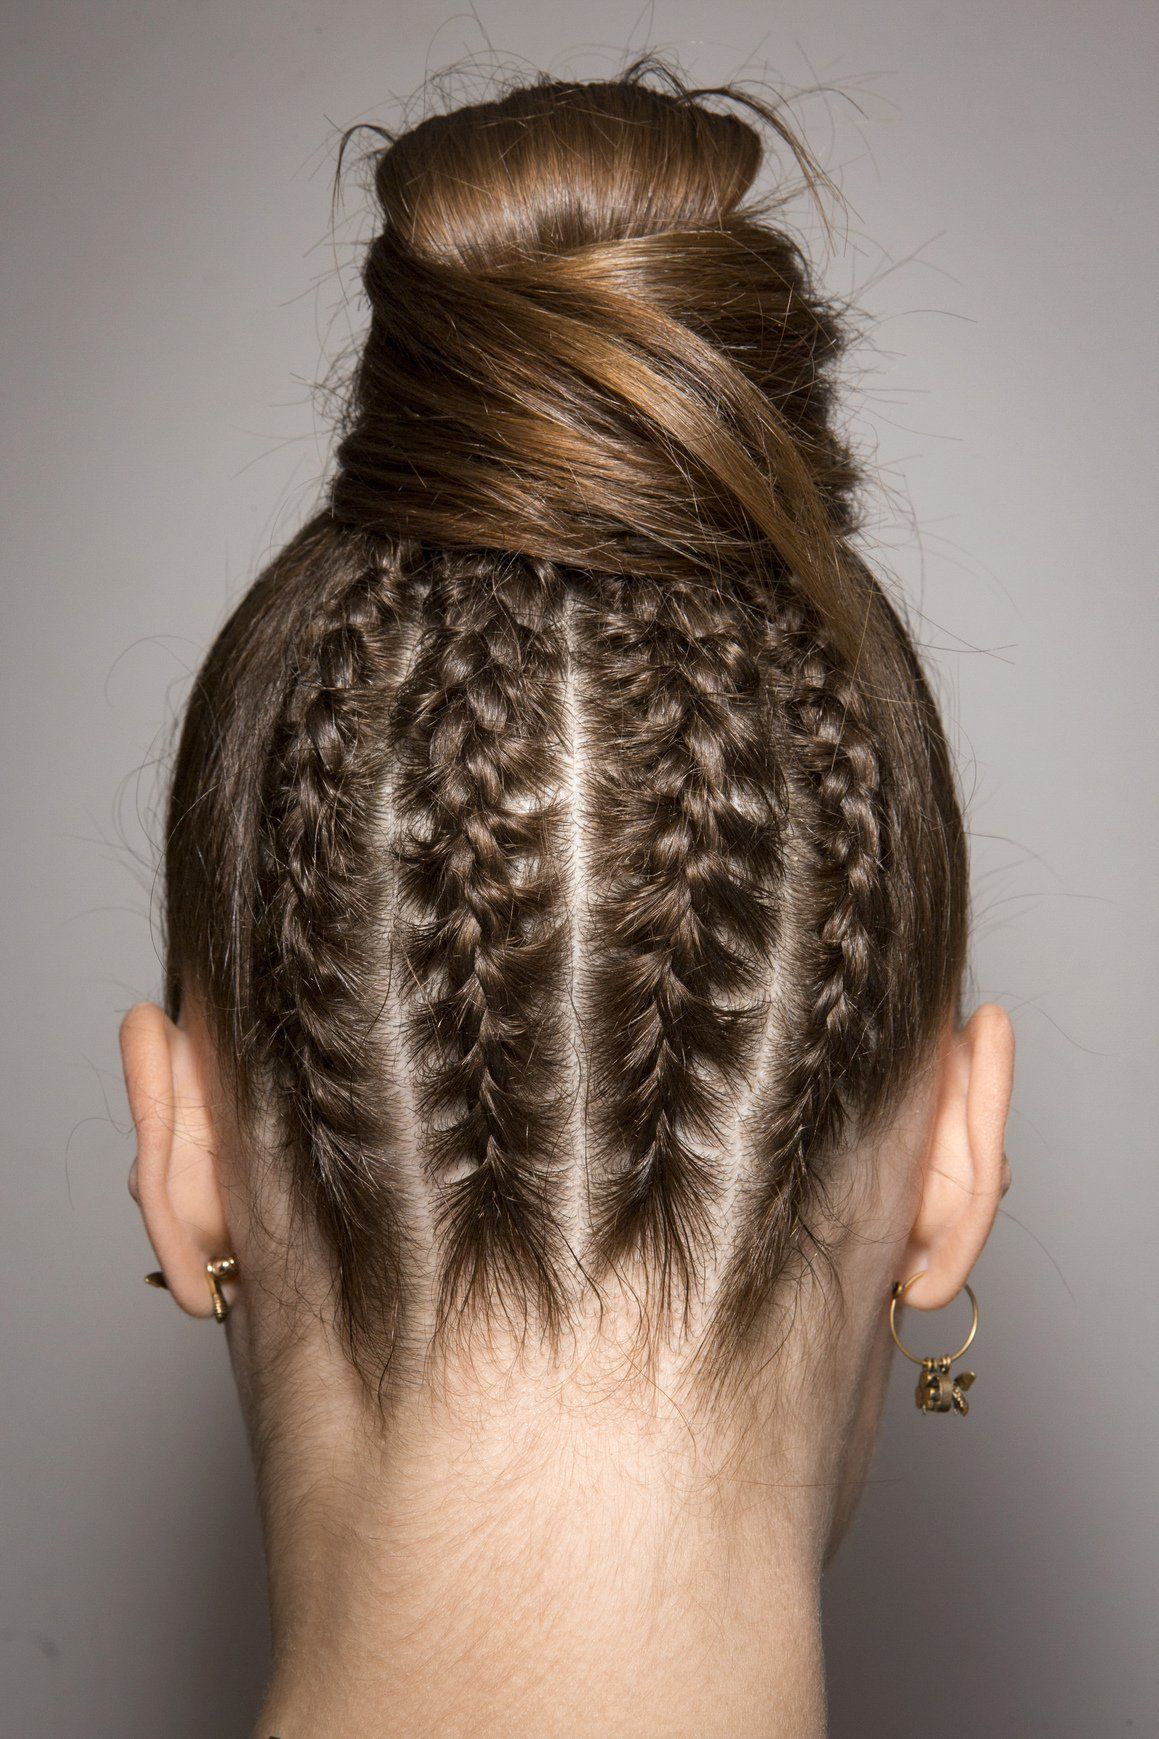 If you're stumped on how to wear your hair try the versatile braid! #hair #fashion #trends #braids